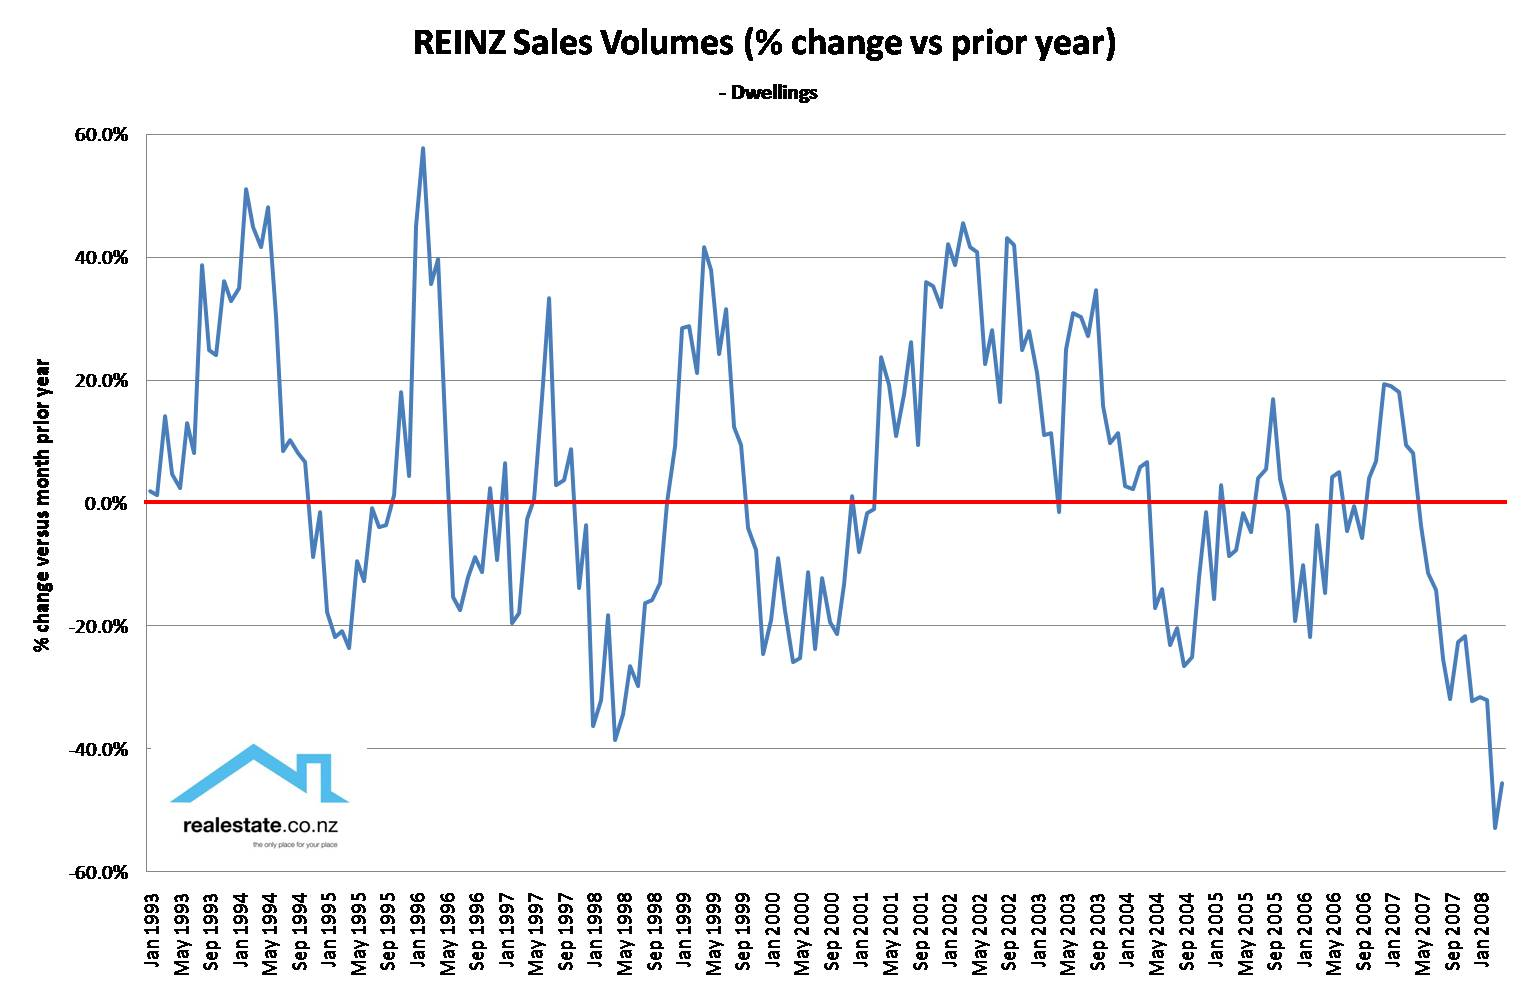 REINZ Monthly sales yr on yr % change 93 to 08